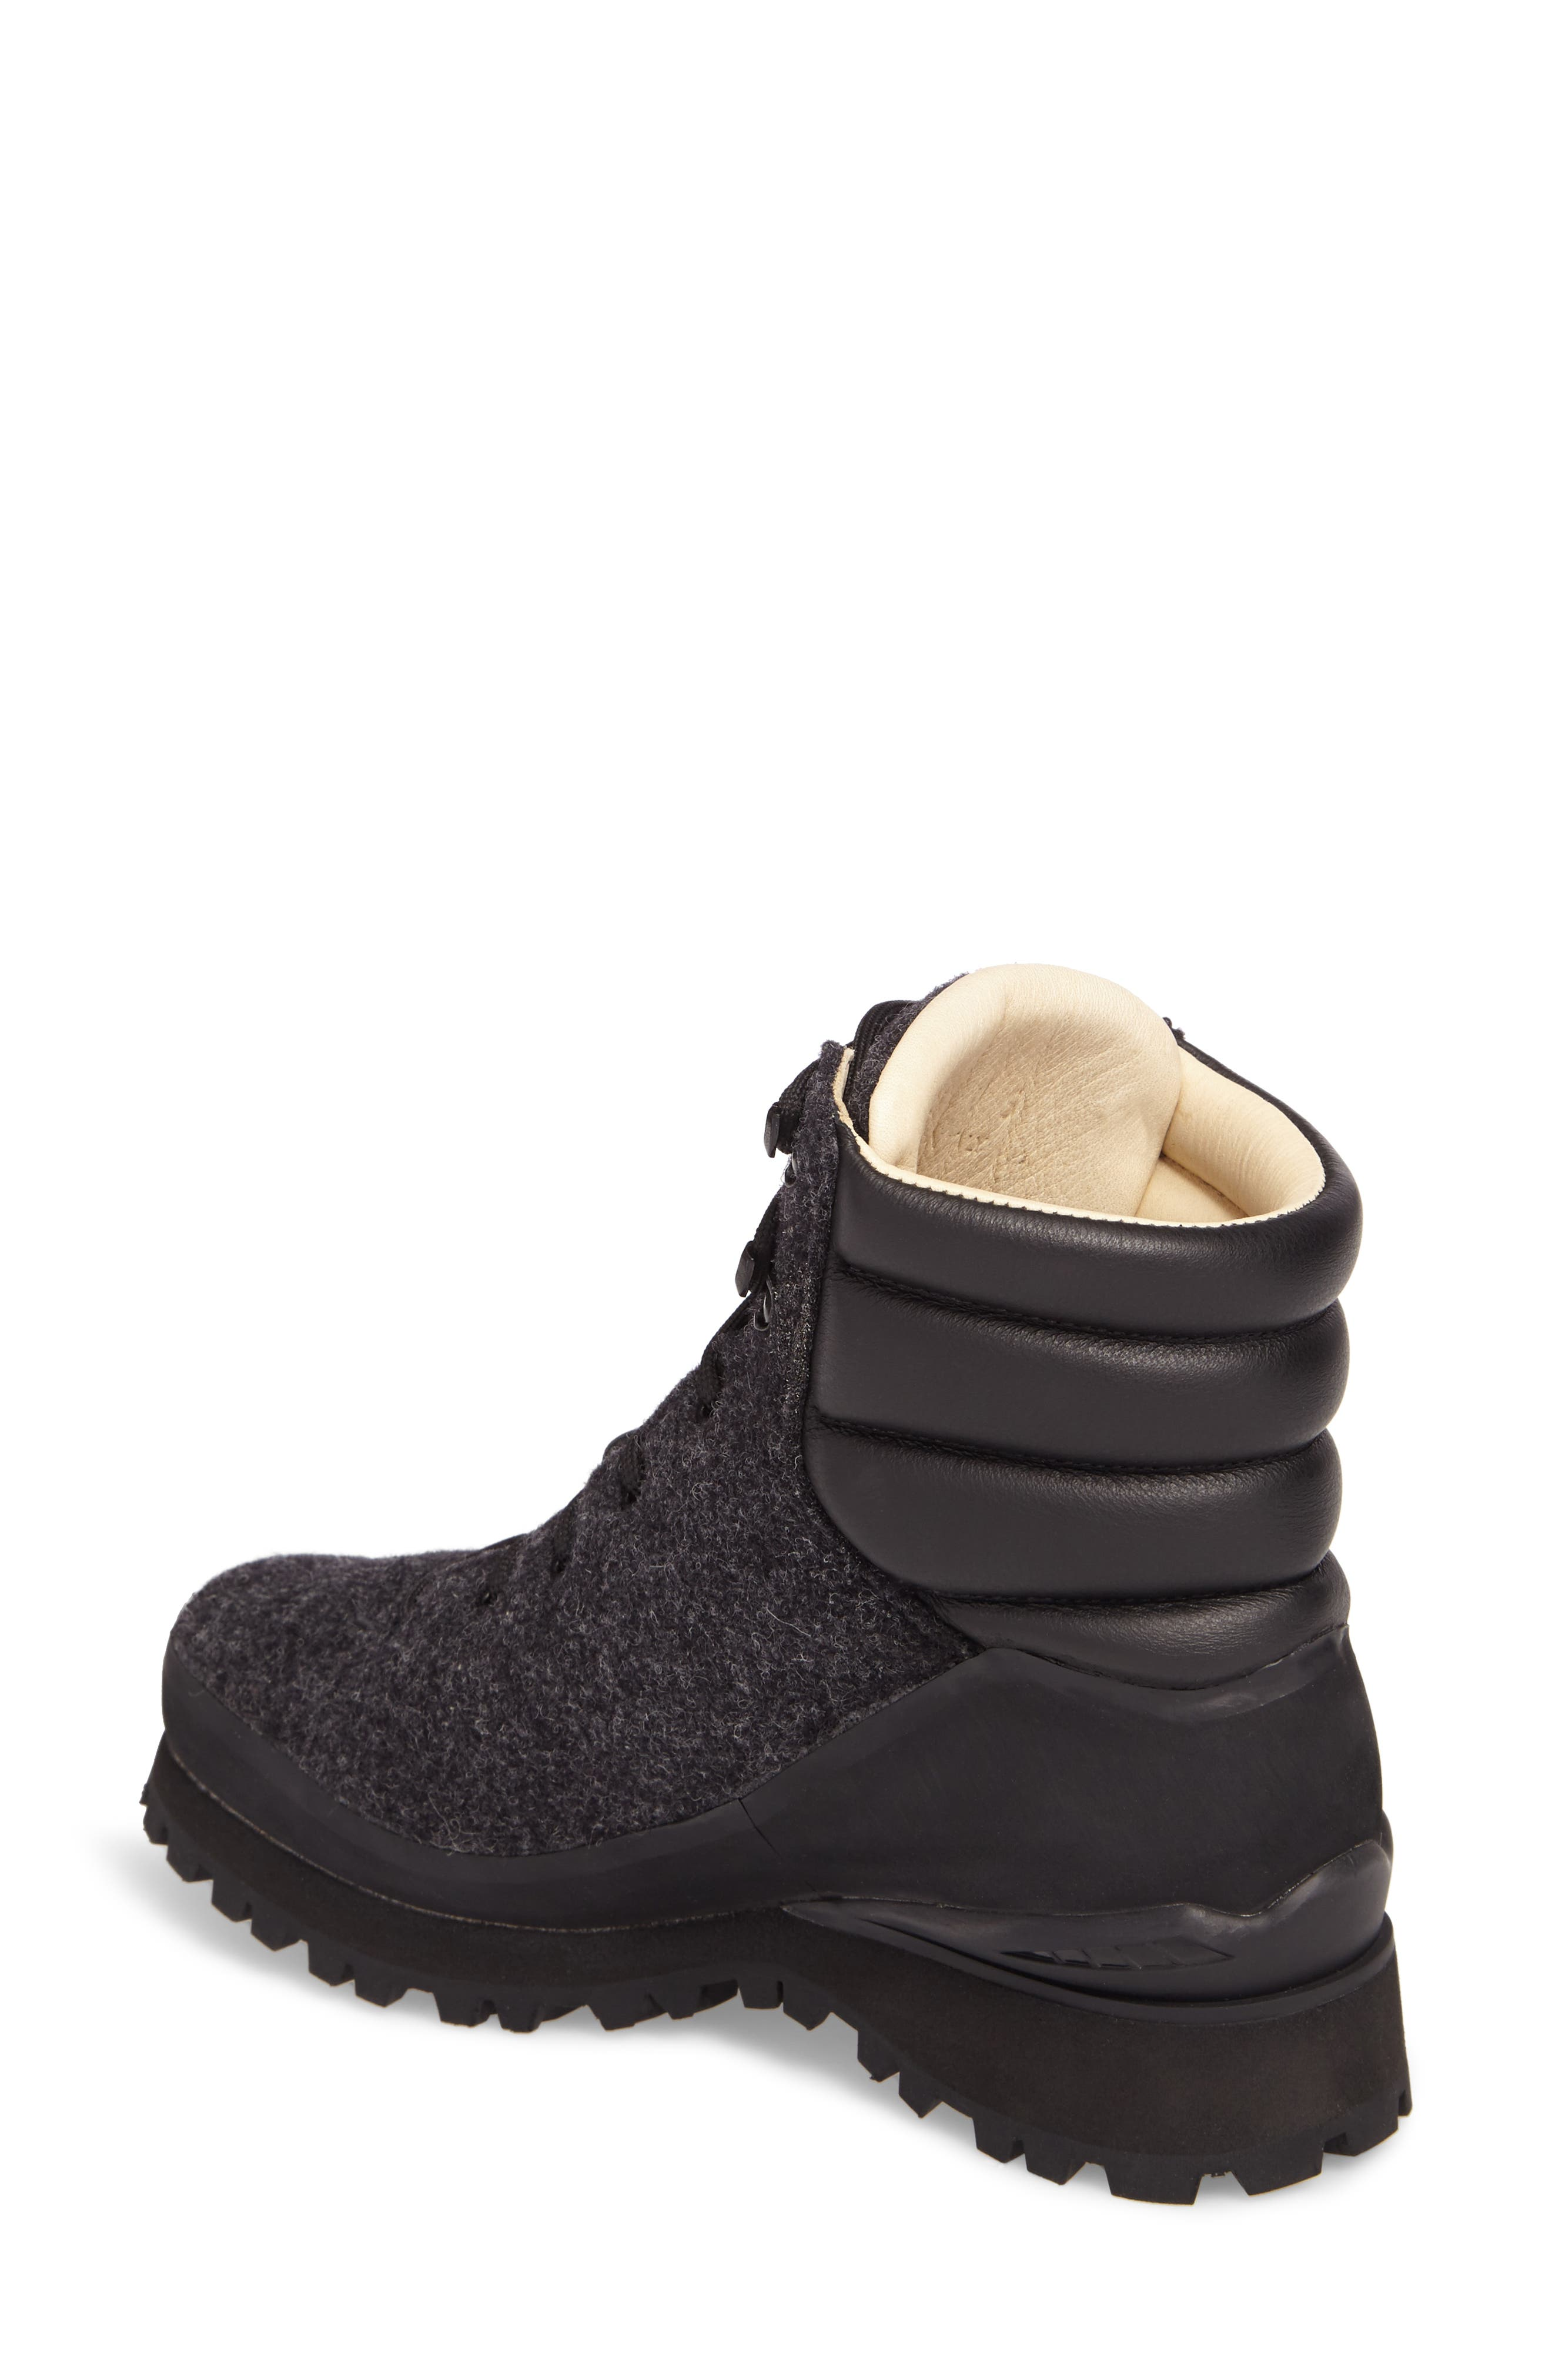 Cryos Hiker Boot,                             Alternate thumbnail 2, color,                             Tnf Black/ Tnf Black